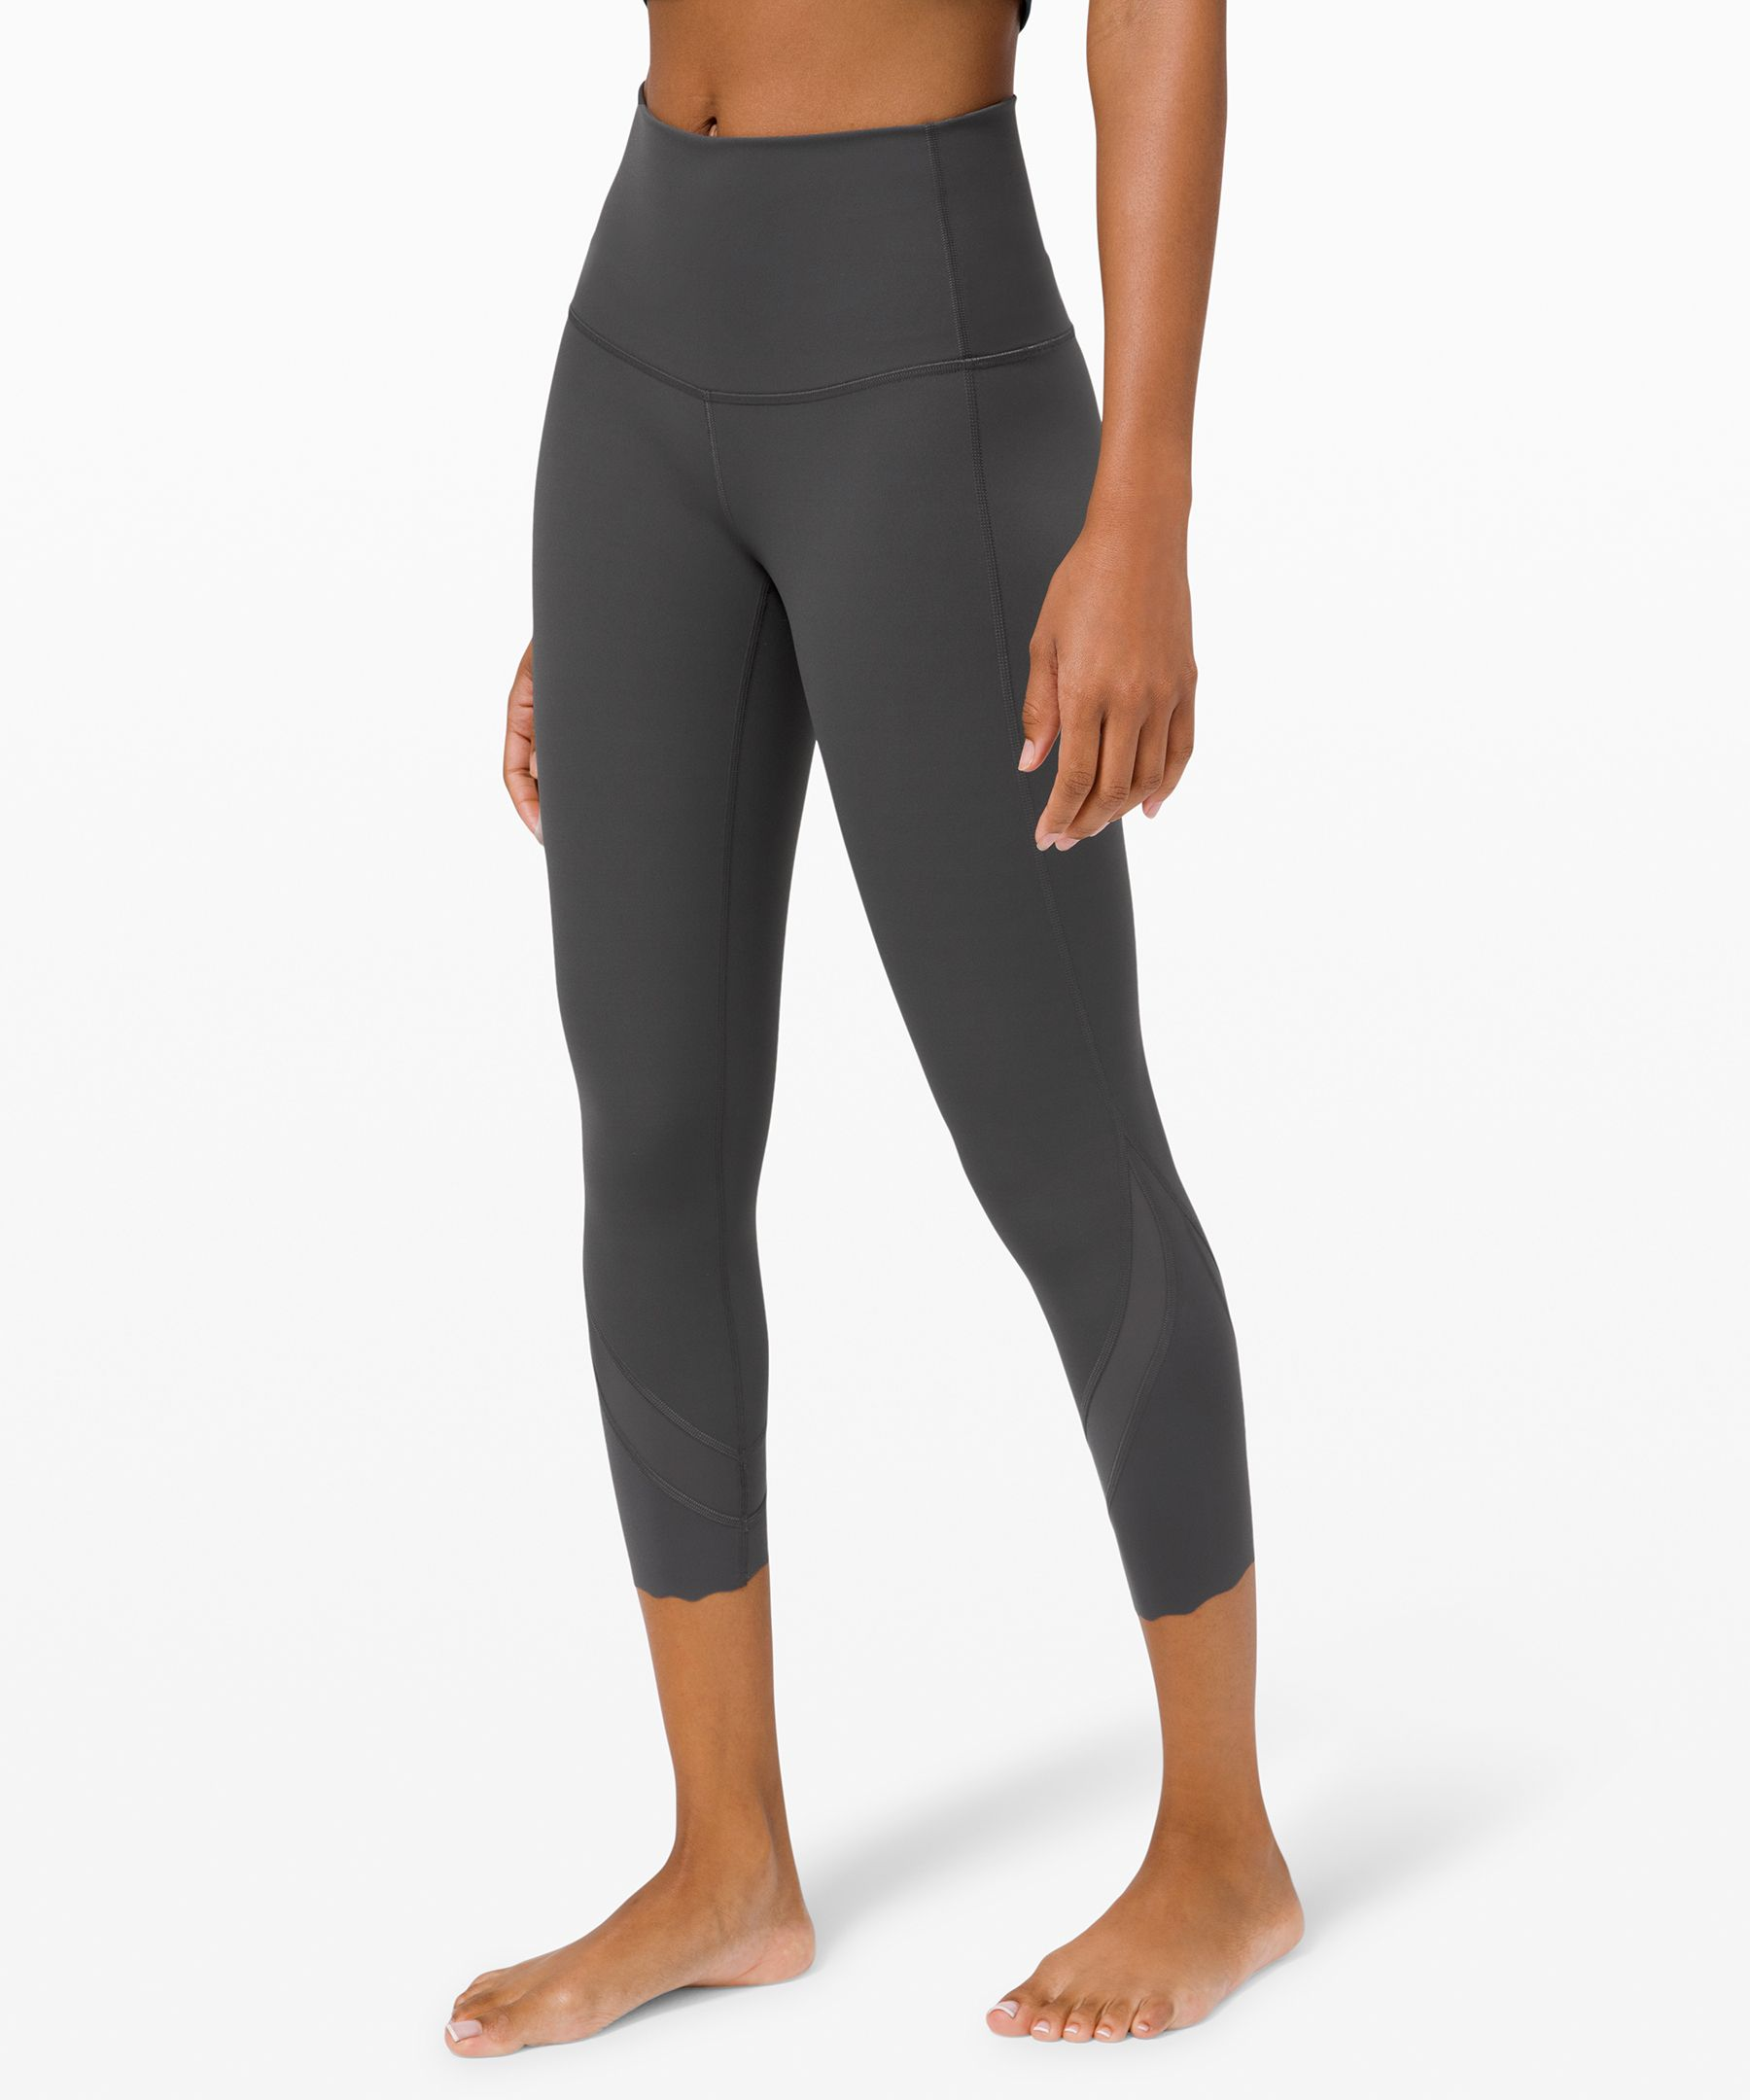 Wunder Under High-Rise Crop 23 Updated Scallop Full-On Luxtreme